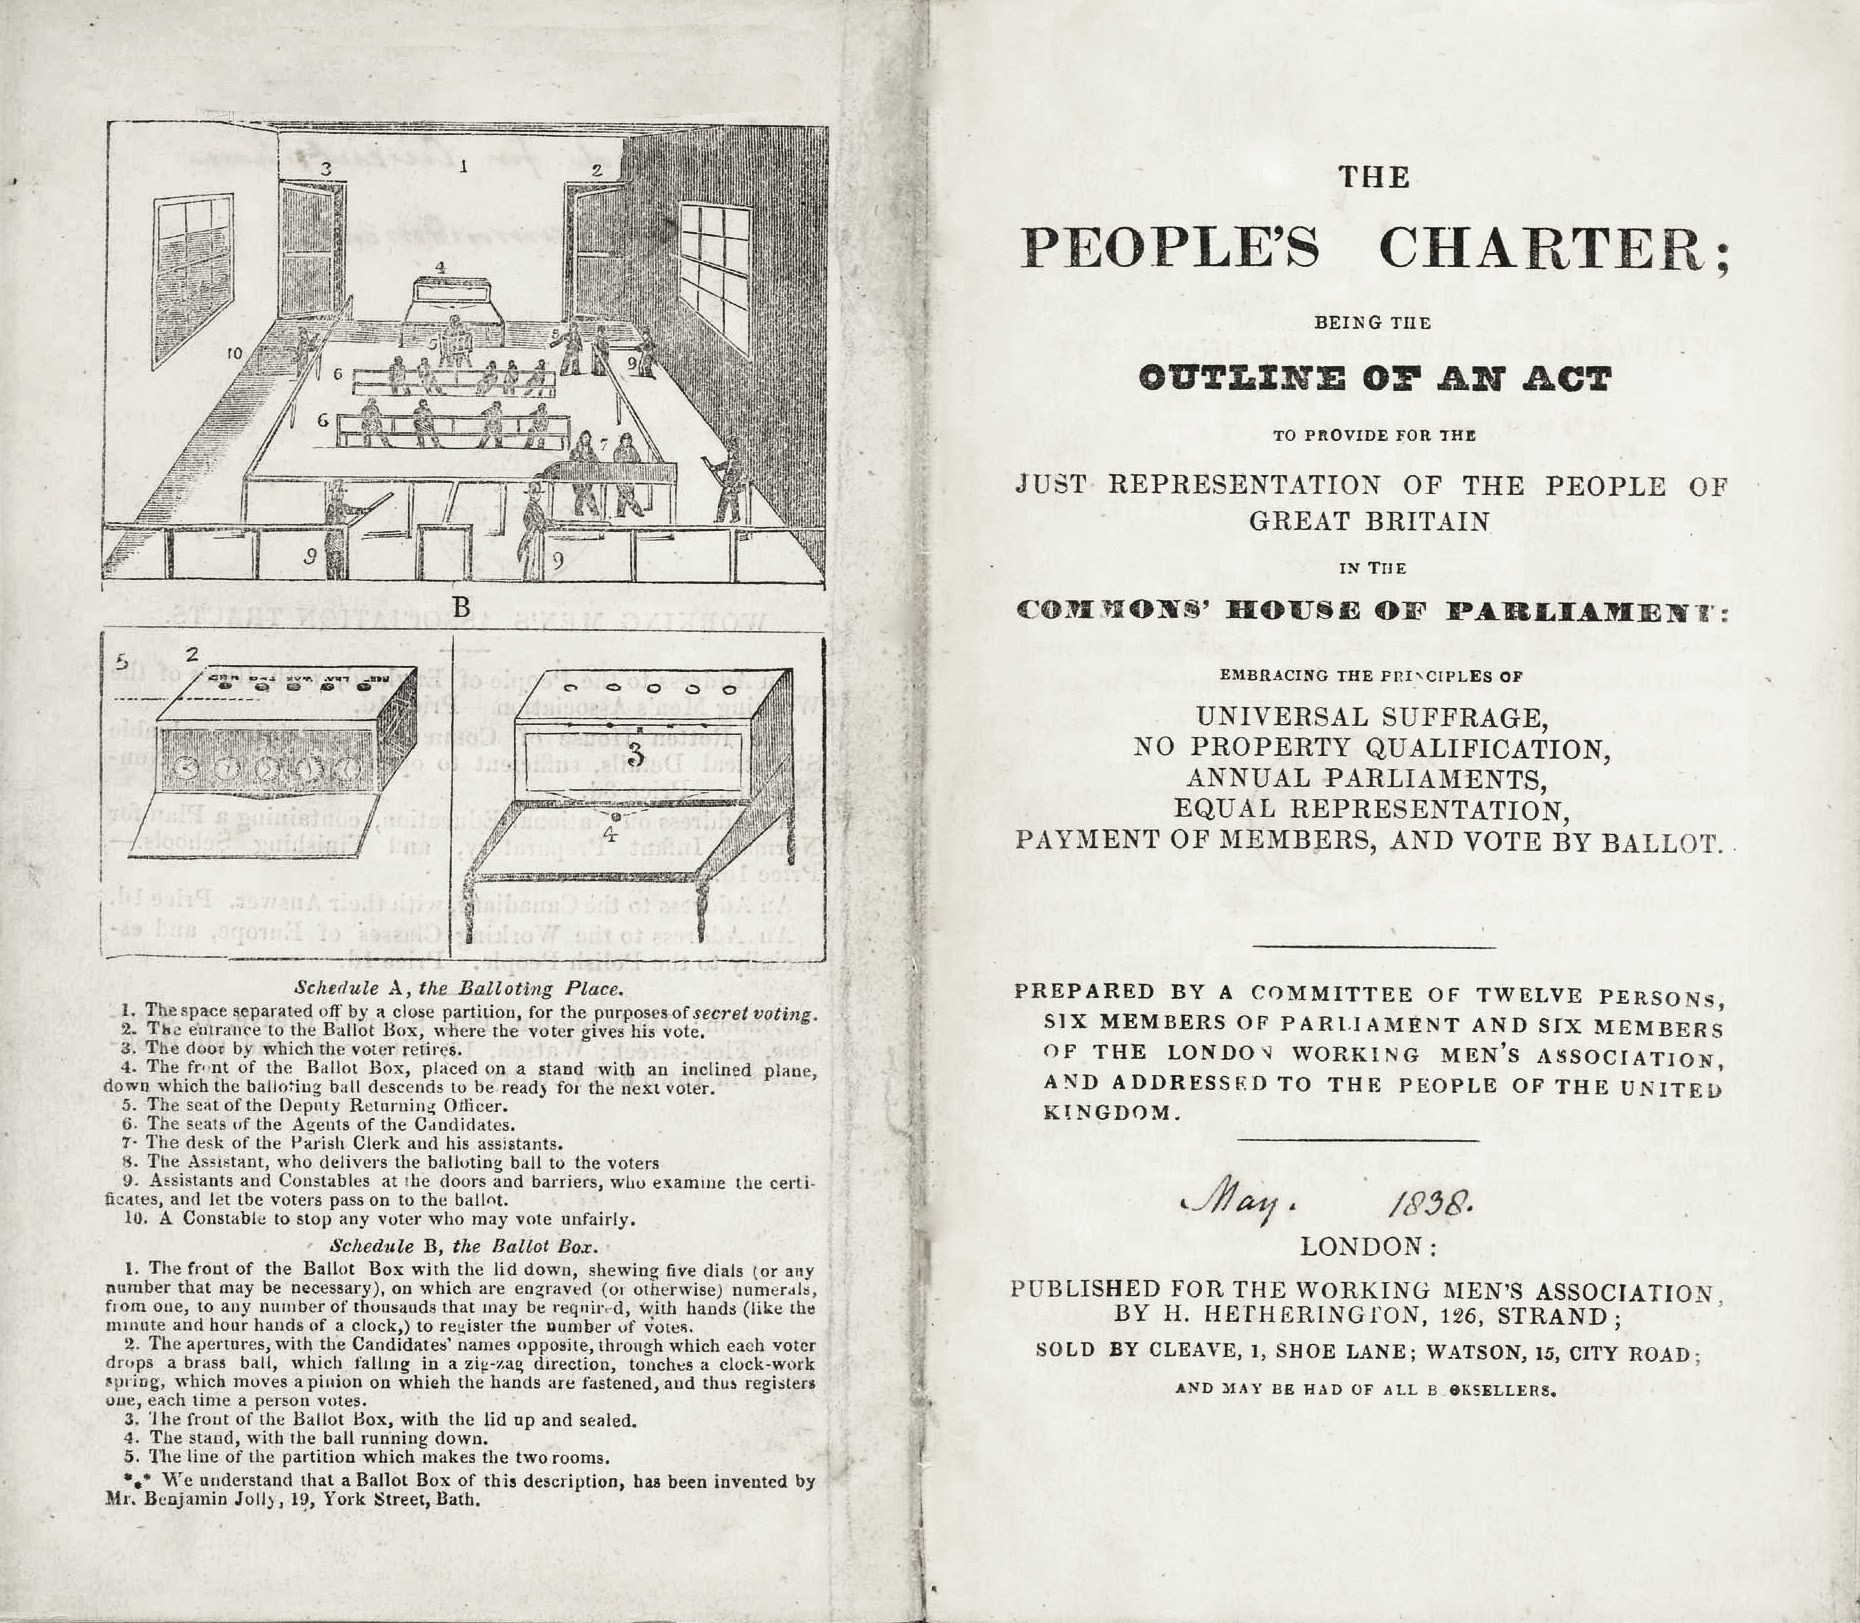 An image of The People's Charter, a document outlining the six key demands of the Chartists, with diagrams for proposed designs for 'the balloting place' and 'the balloting box